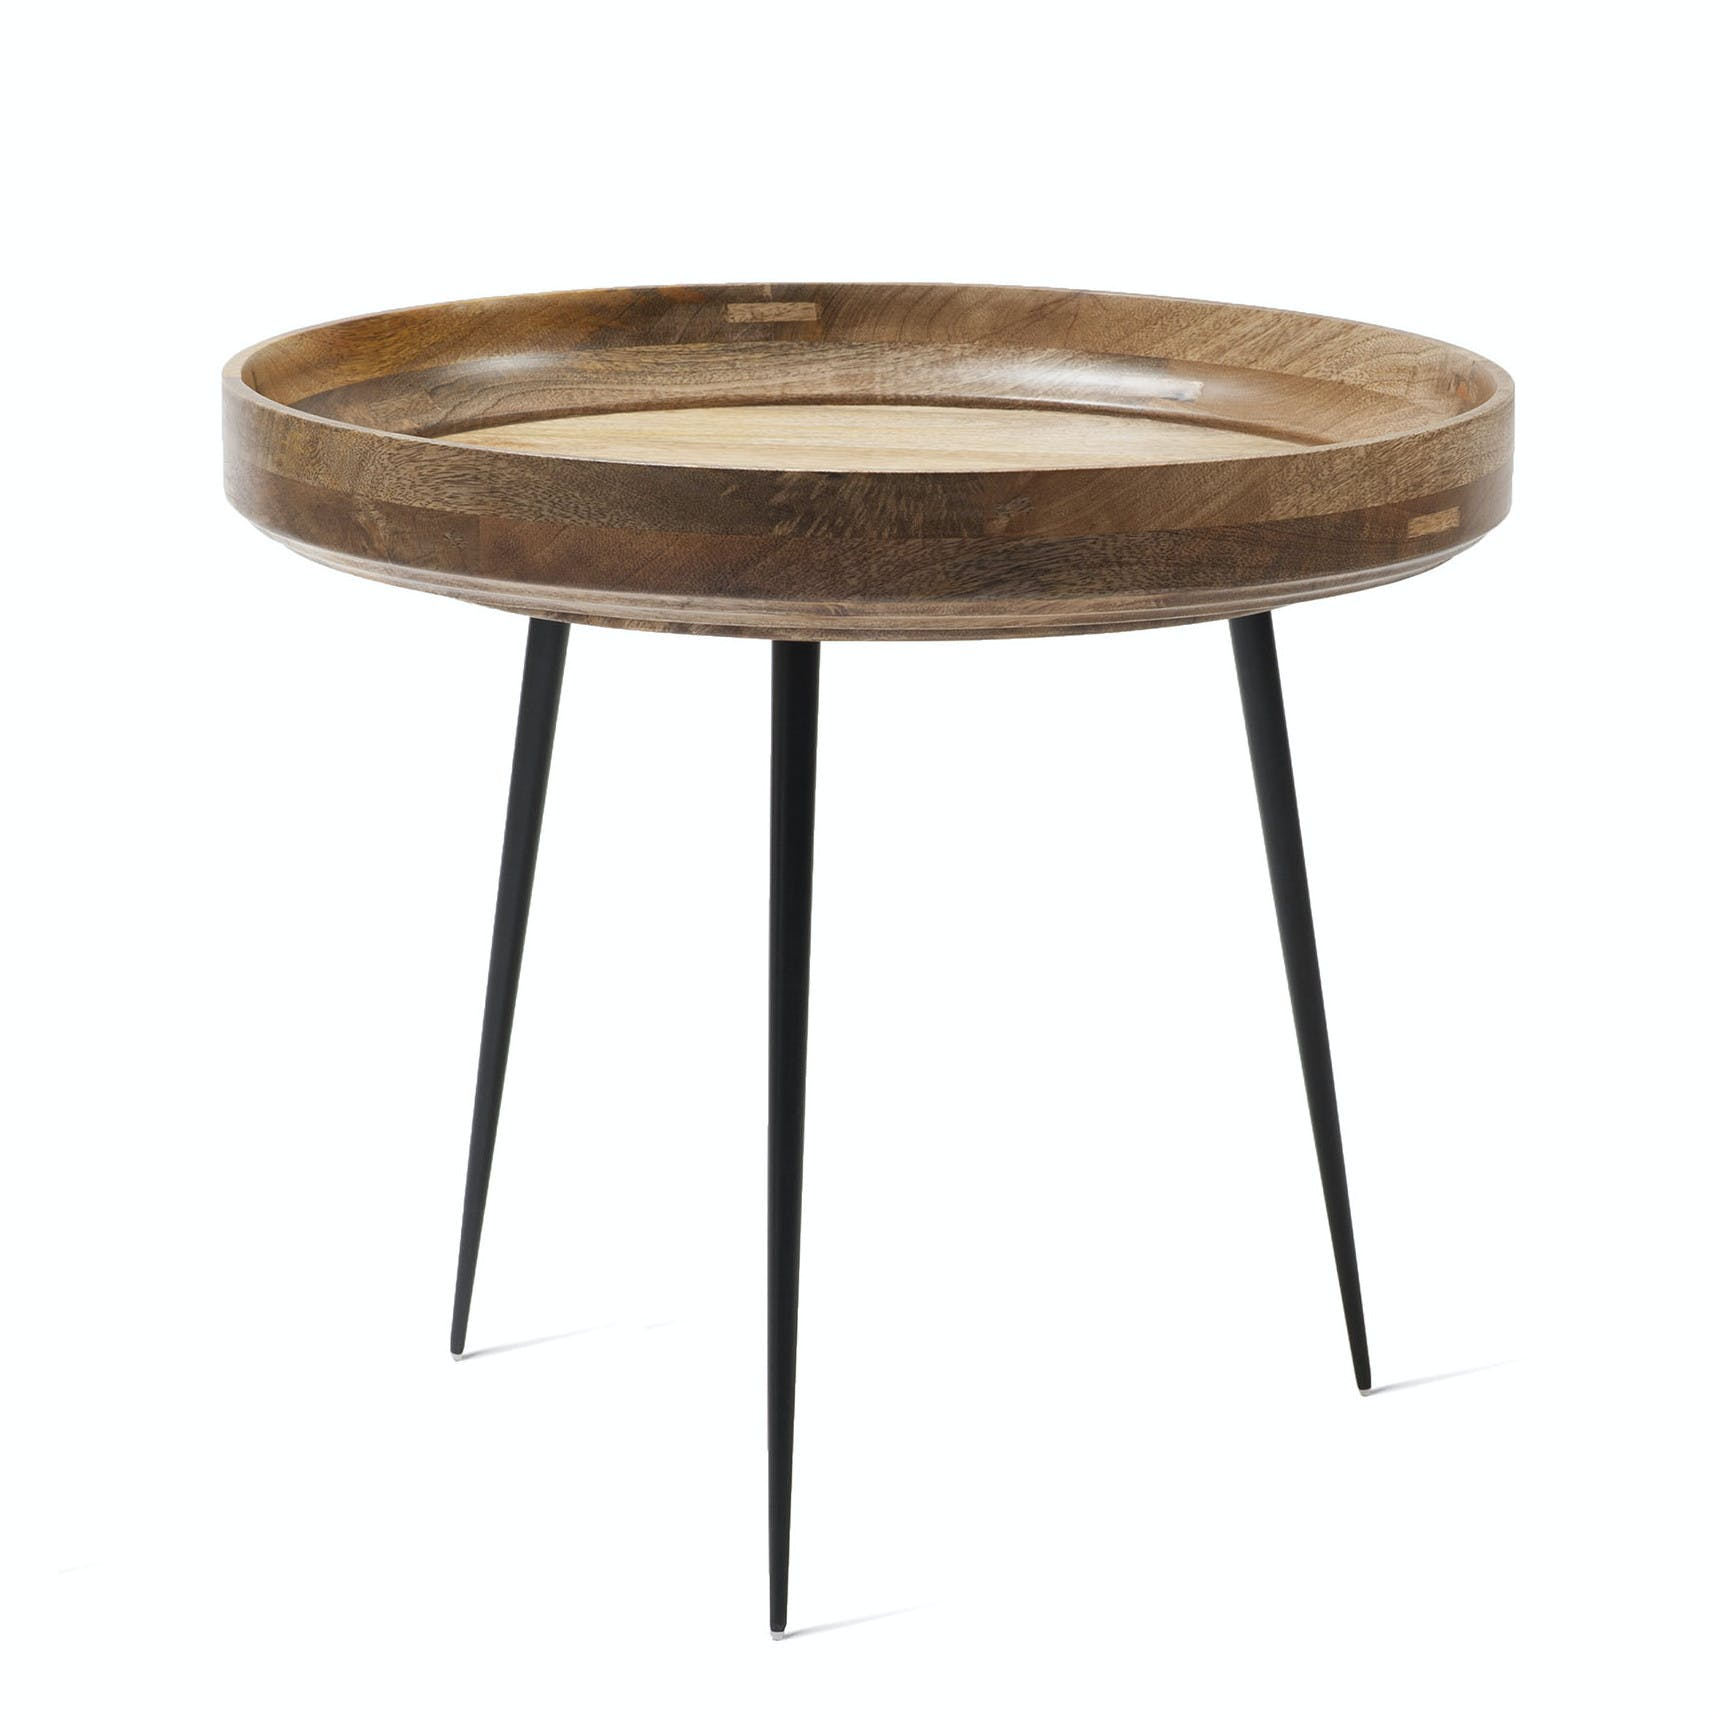 Mater Natural Large Bowl Table Haute Living